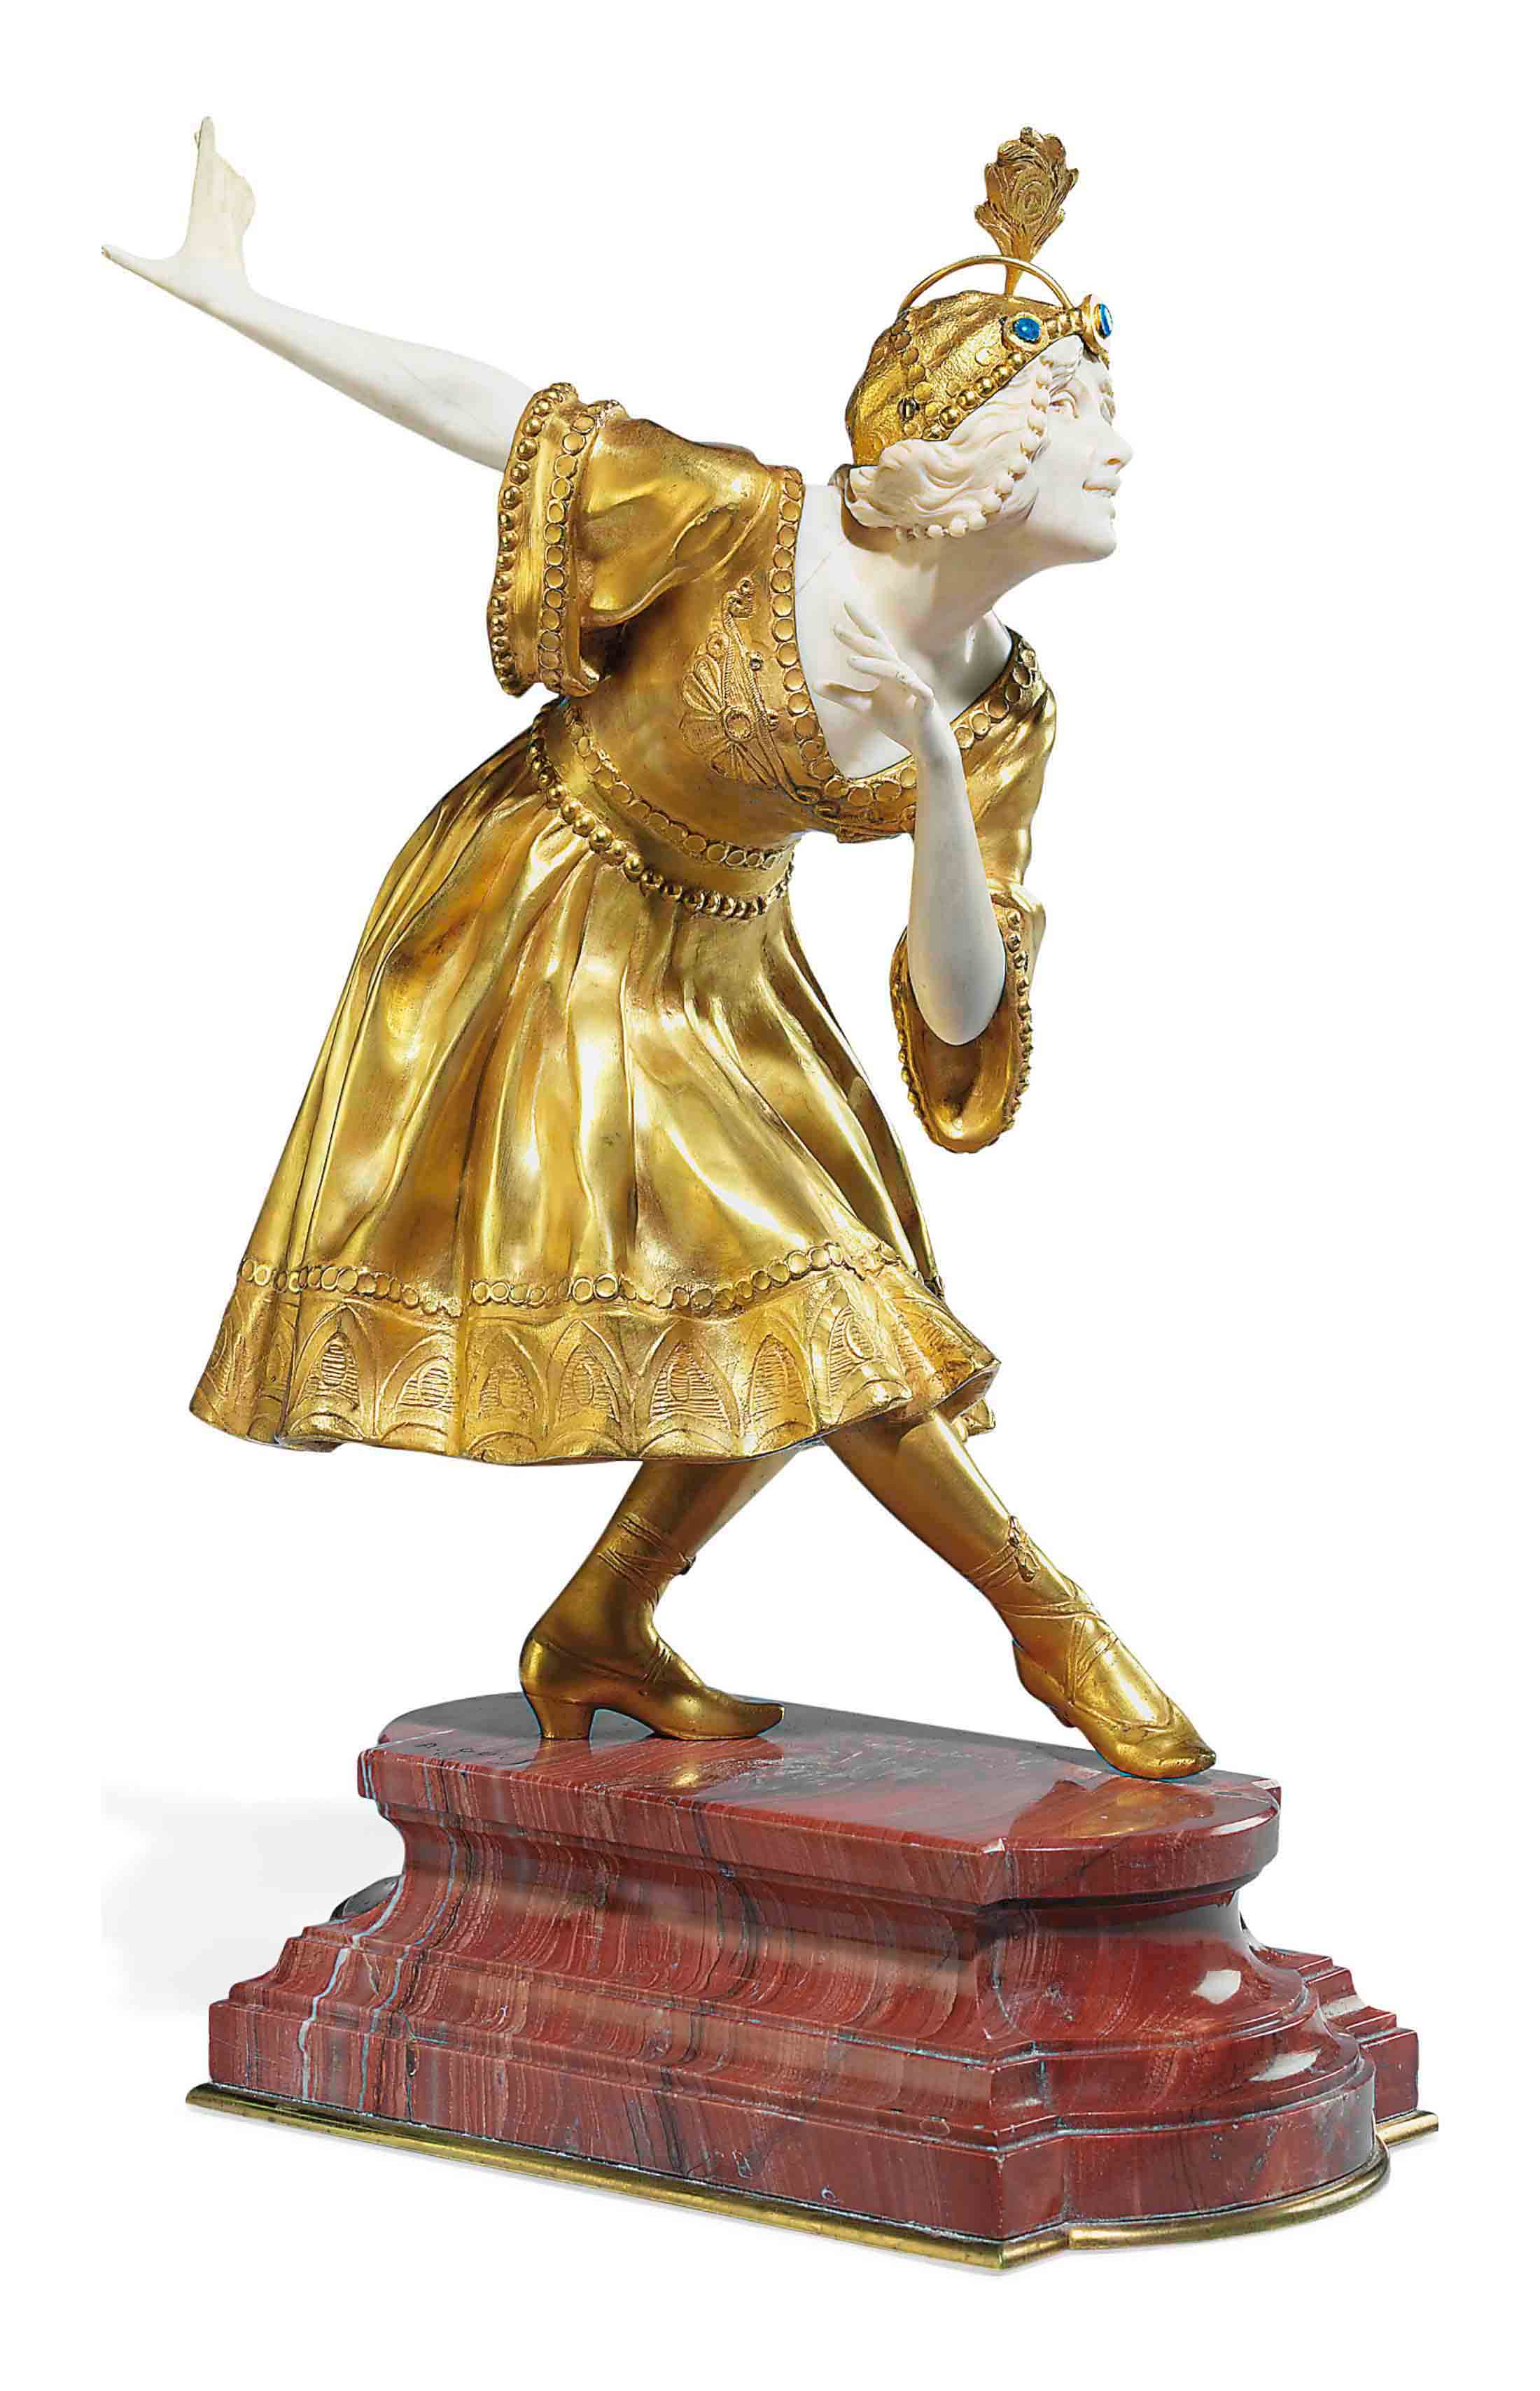 A FRENCH GILT-BRONZE AND IVORY FIGURE OF A DANCING GIRL